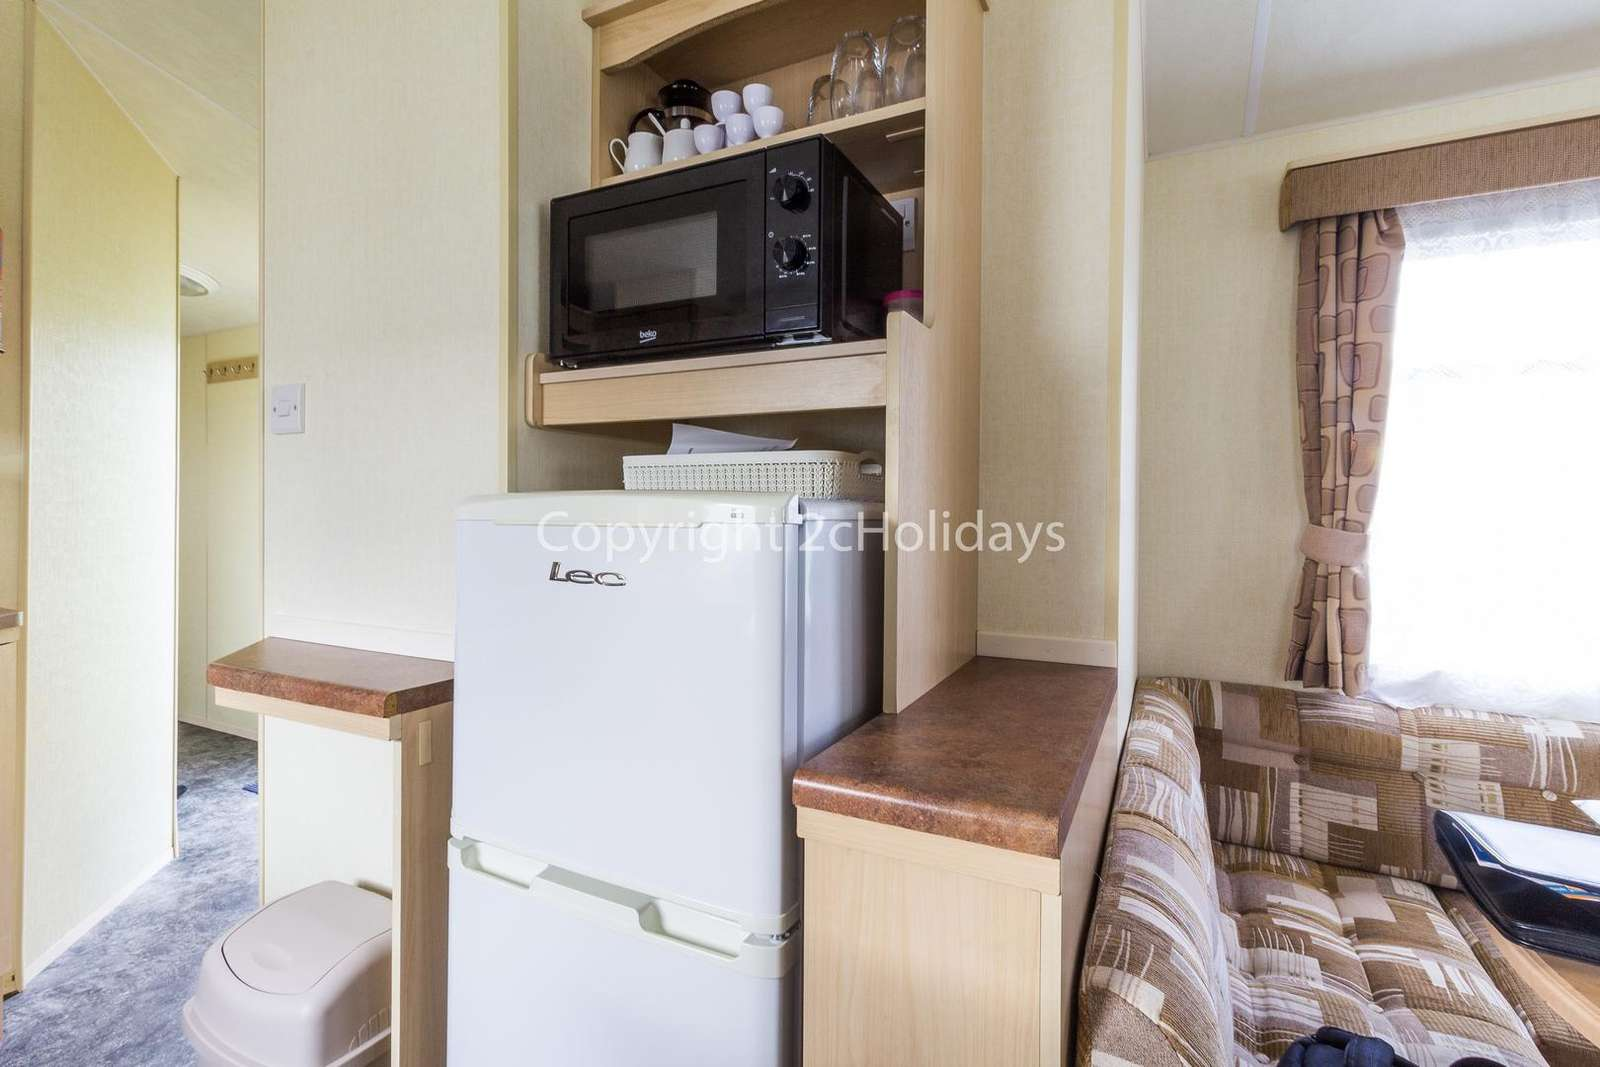 Cherry Tree Holiday Park, in Great Yarmouth. Perfect for families.